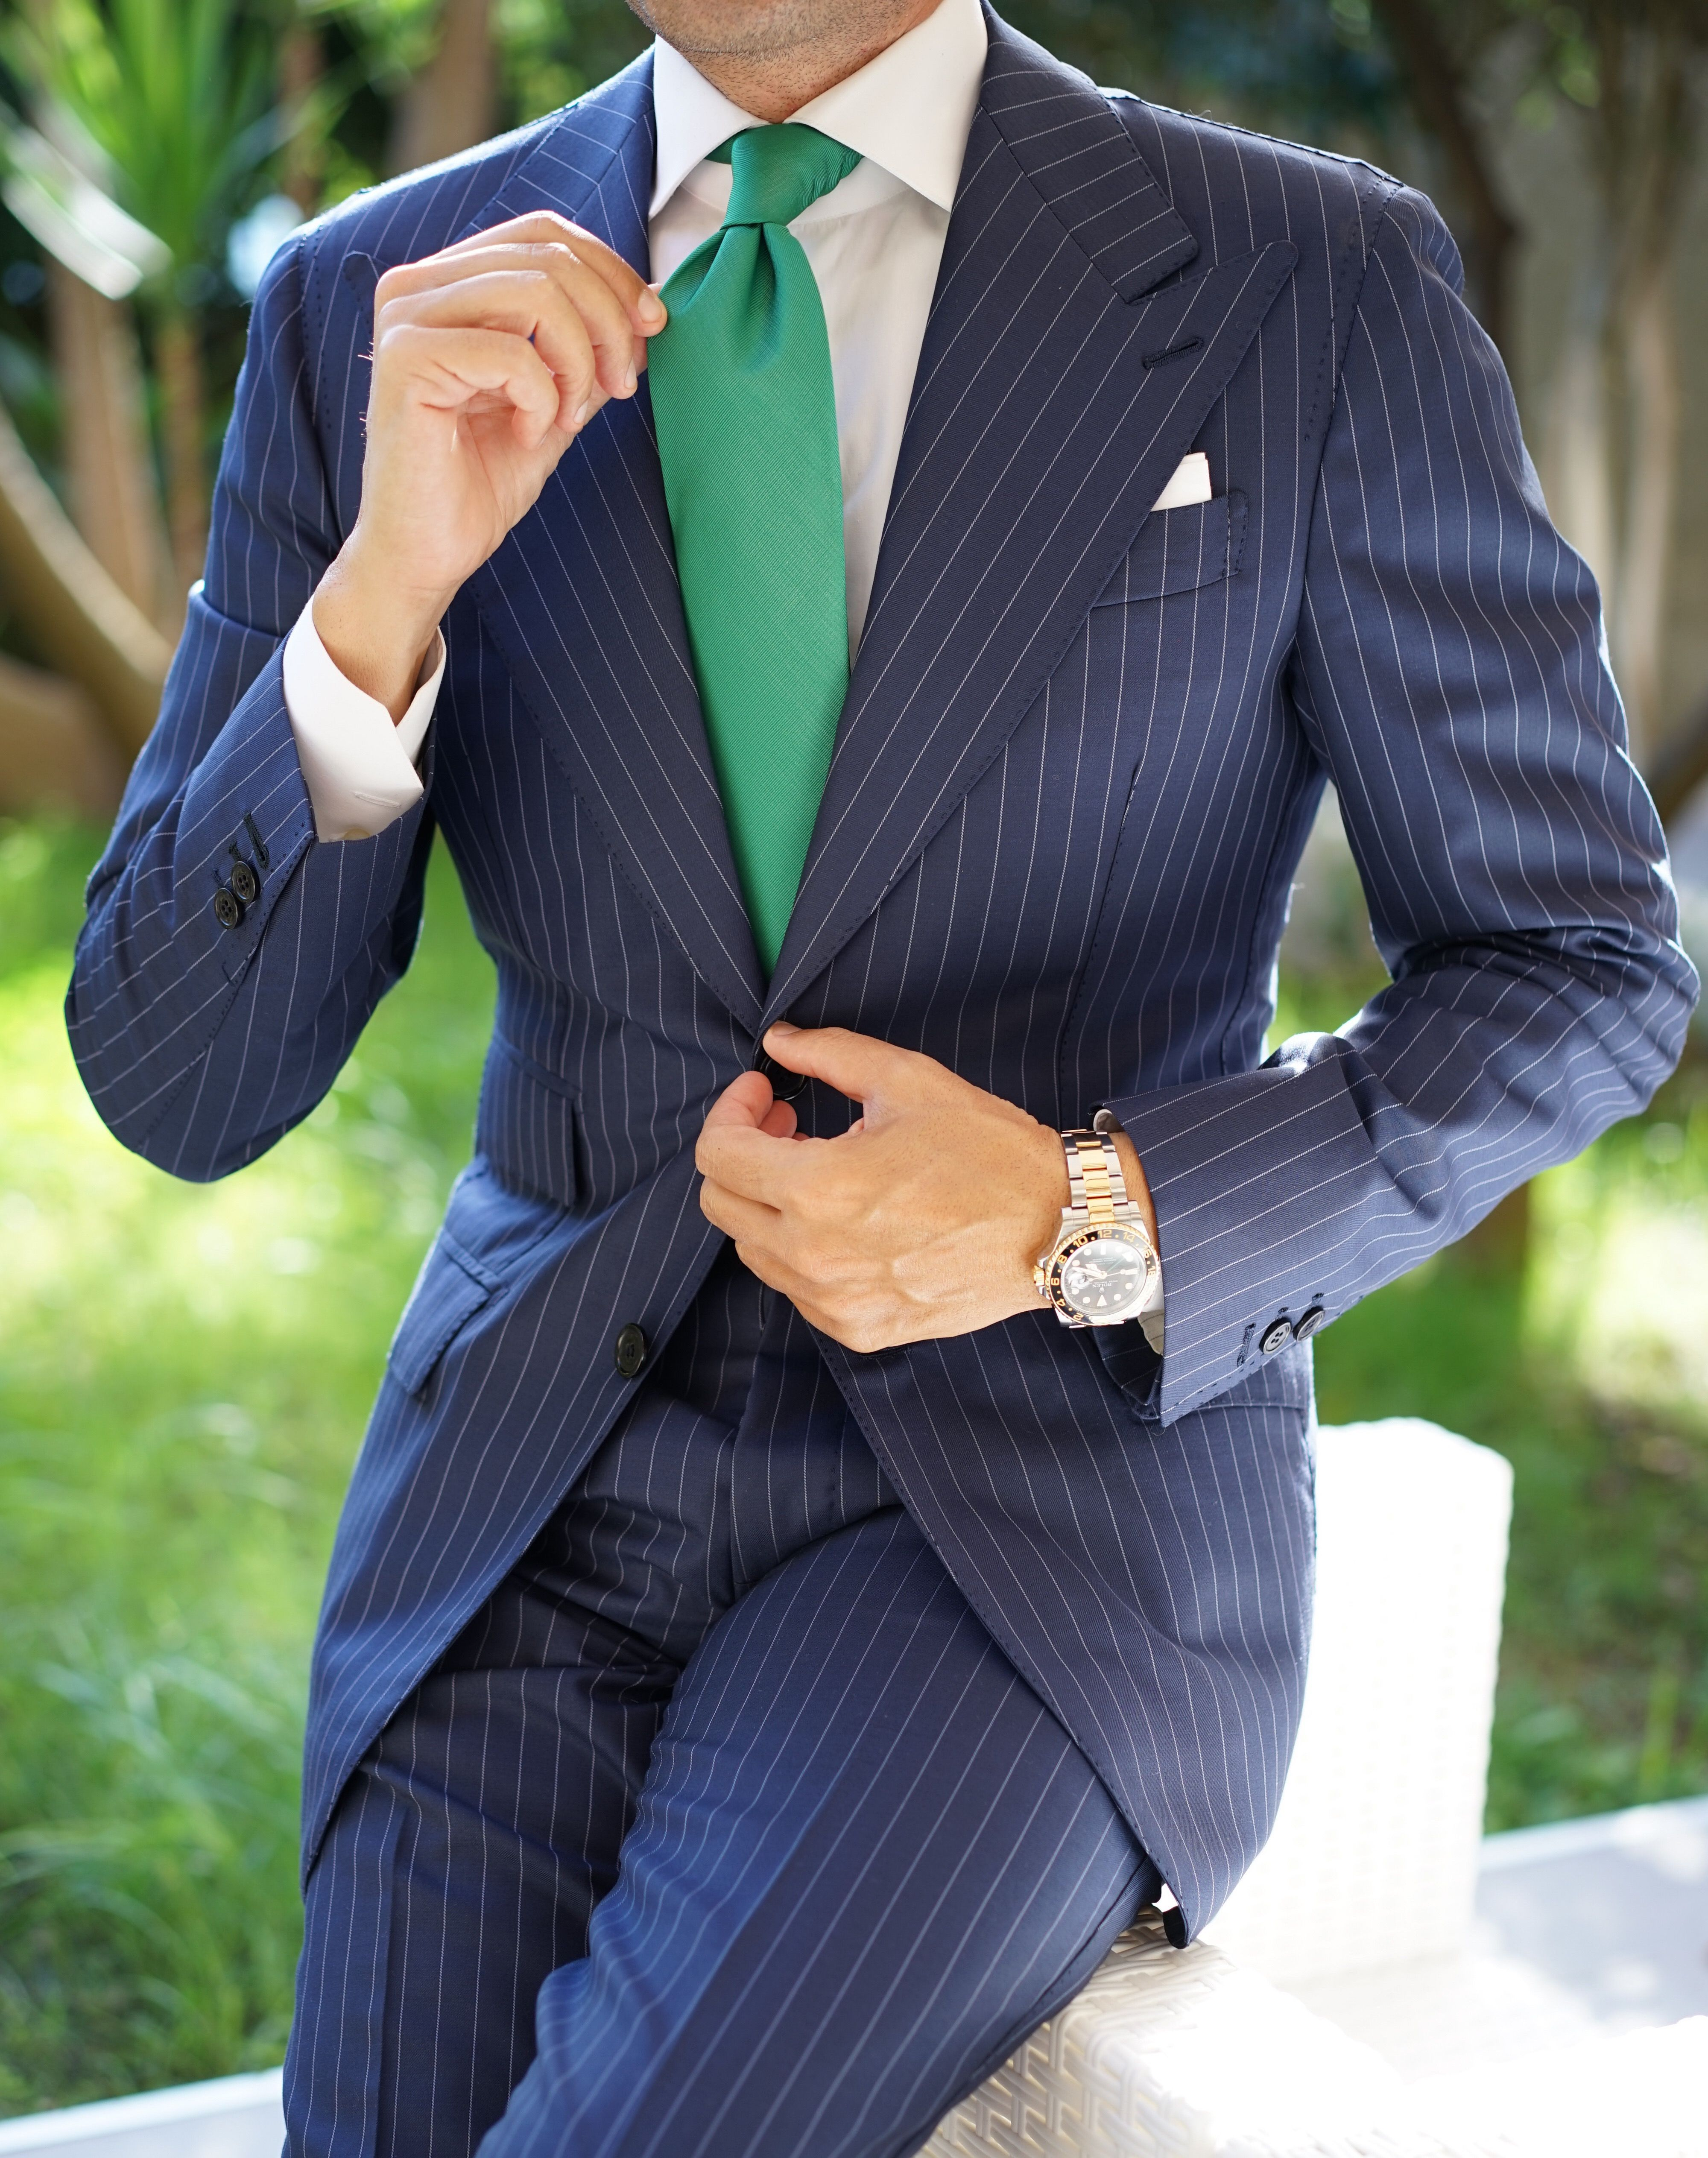 Pin on Suits & Jackets